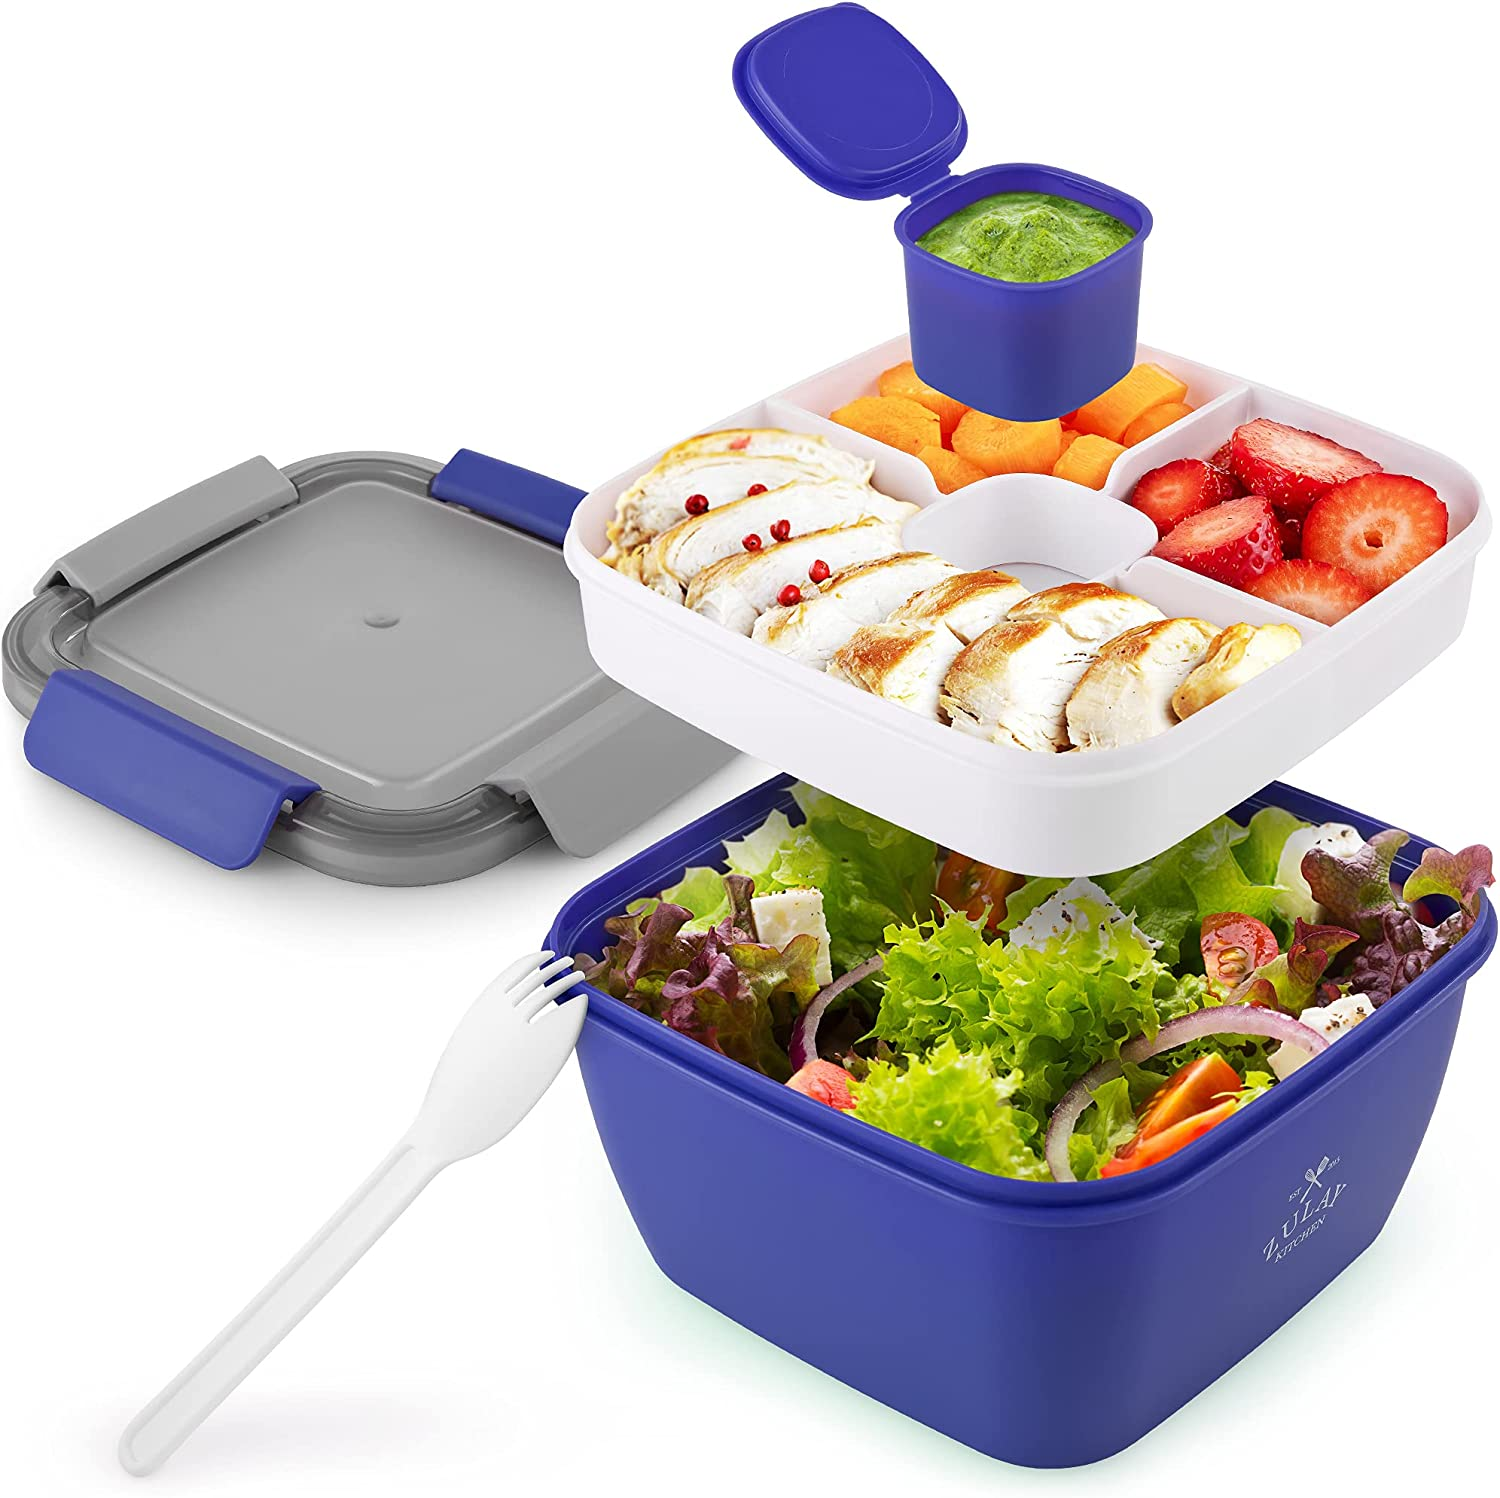 Zulay 52oz Salad Container For Lunch - BPA Free Leak Proof Salad Dressing Container To Go With Smart Lock Design - Salad Lunch Container With Dressing Container & Reusable Spork (Dark Blue)